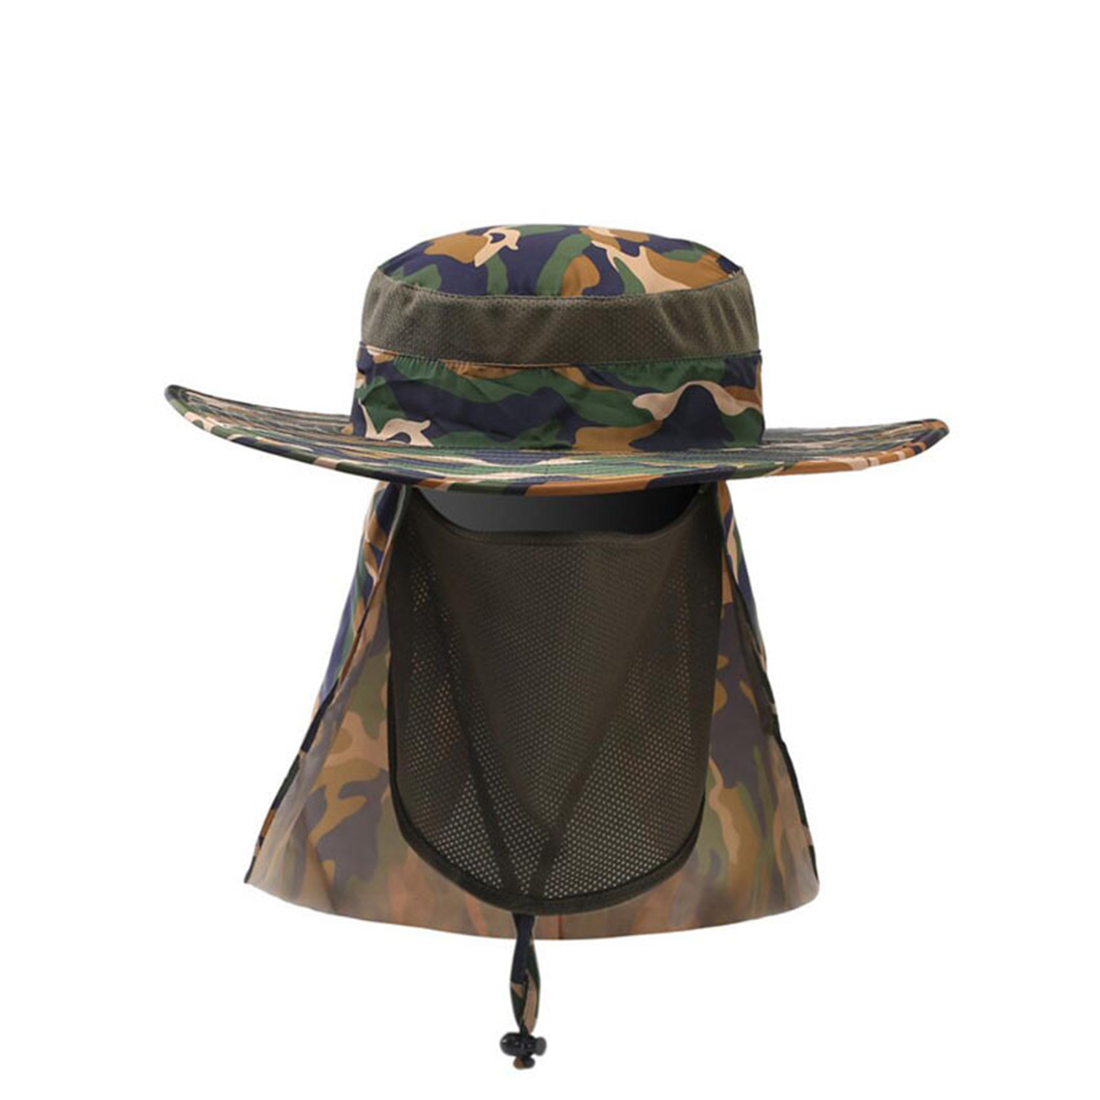 Comfortable Fishing Hat Mesh fabric Outdoor Supplies Wide Curved brim Camo|Fishing Caps| |  - title=